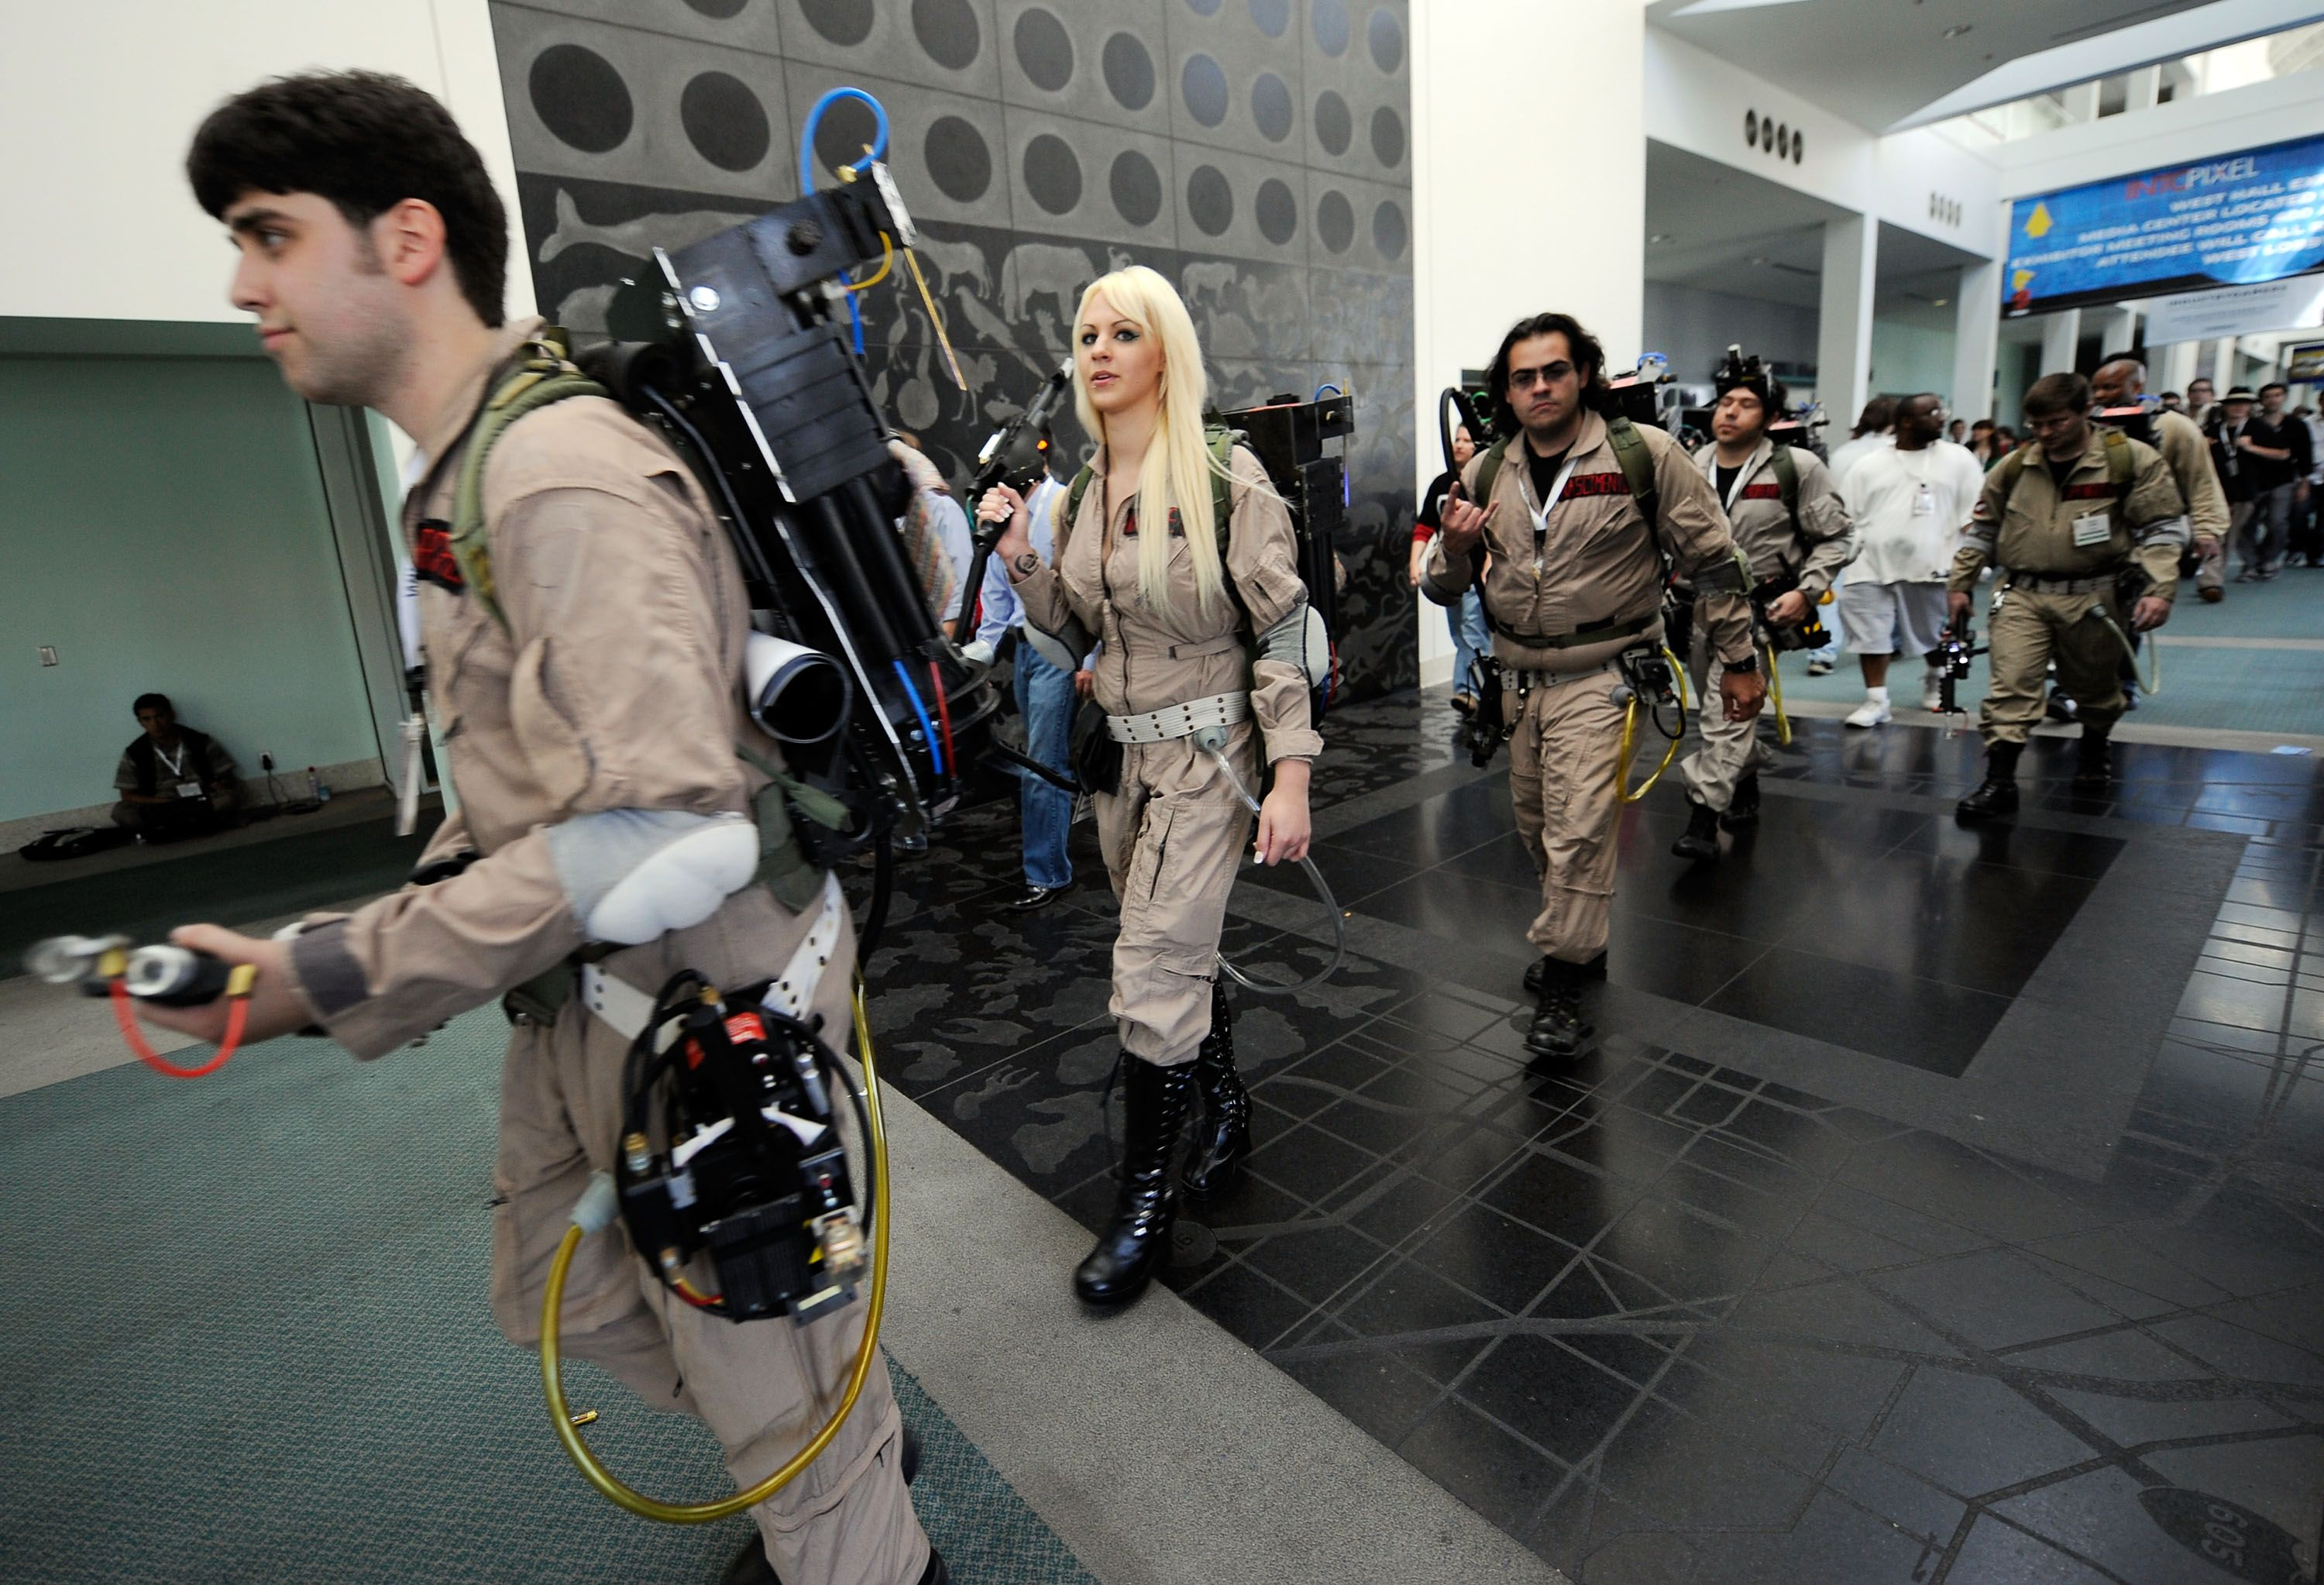 How To Create A Ghostbusters Costume Ghostbusterscostume Pinterest